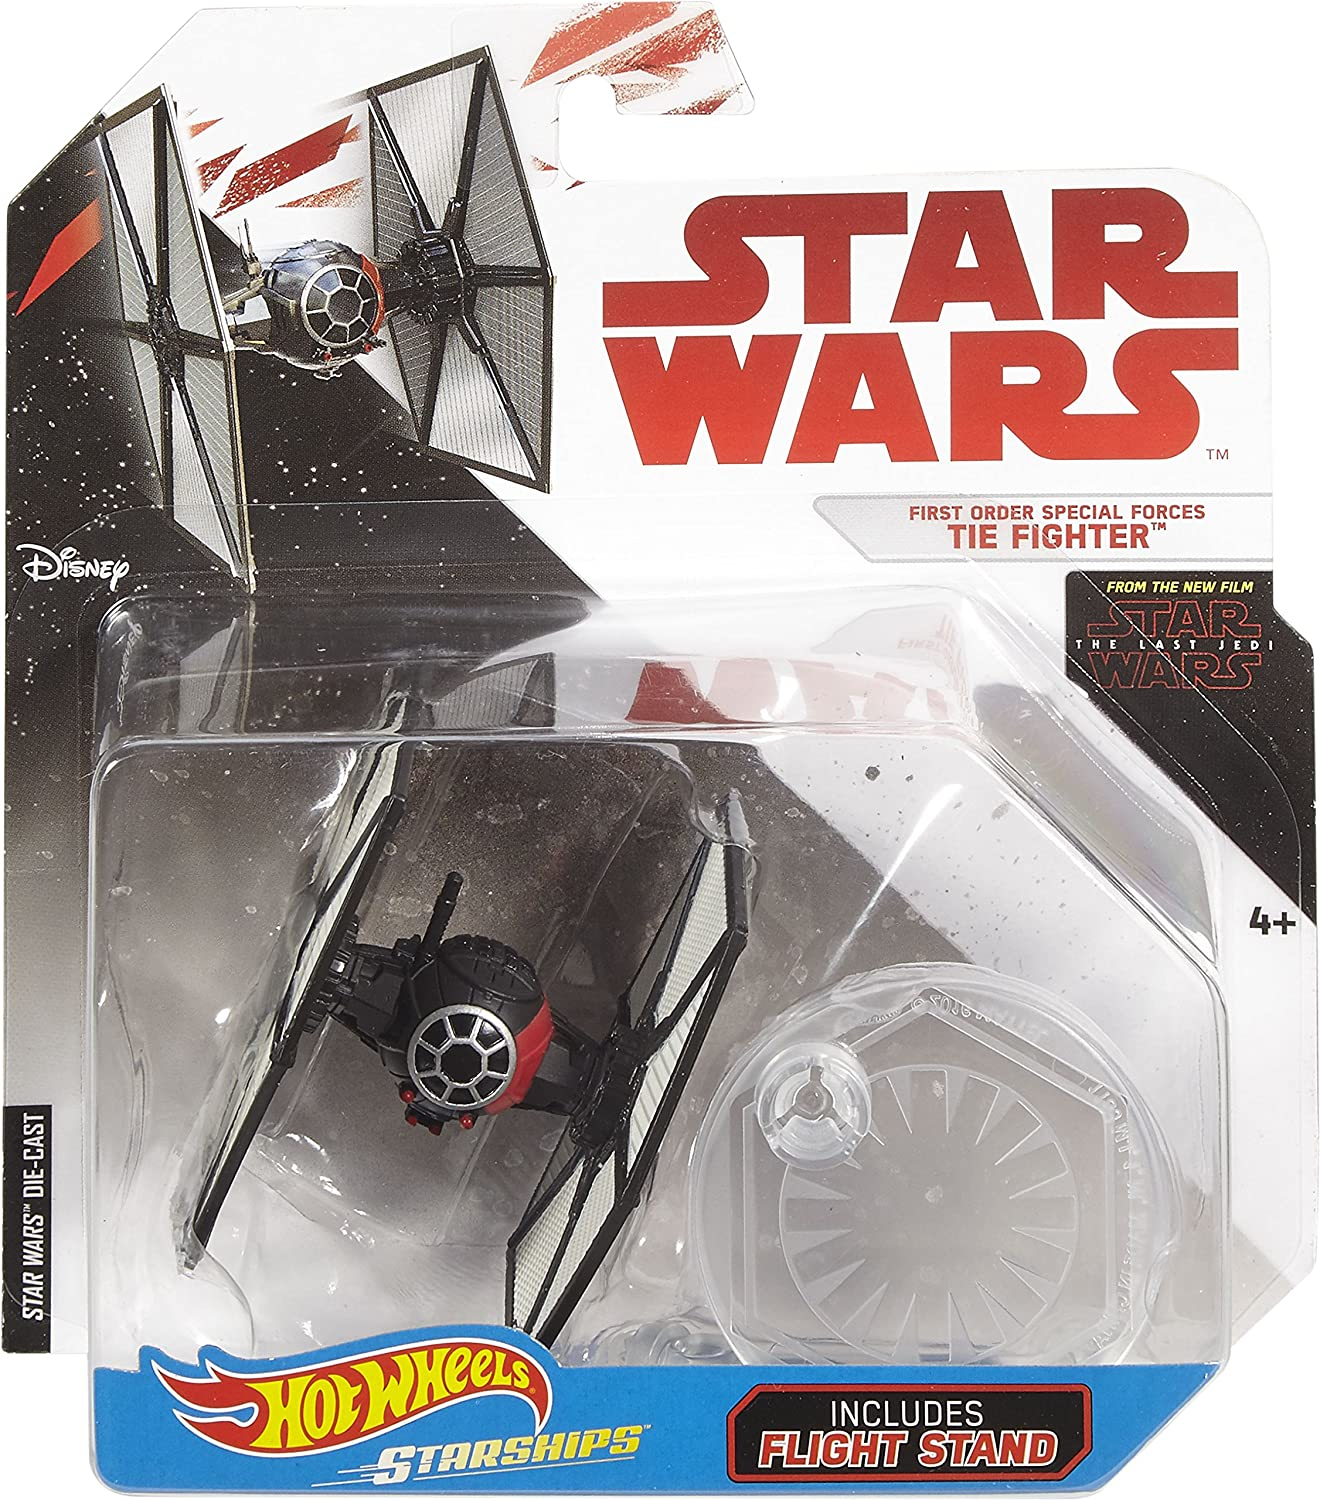 Hot Wheels Star Wars The Last Jedi First Order Special Forces Tie Fighter: Amazon.es: Juguetes y juegos